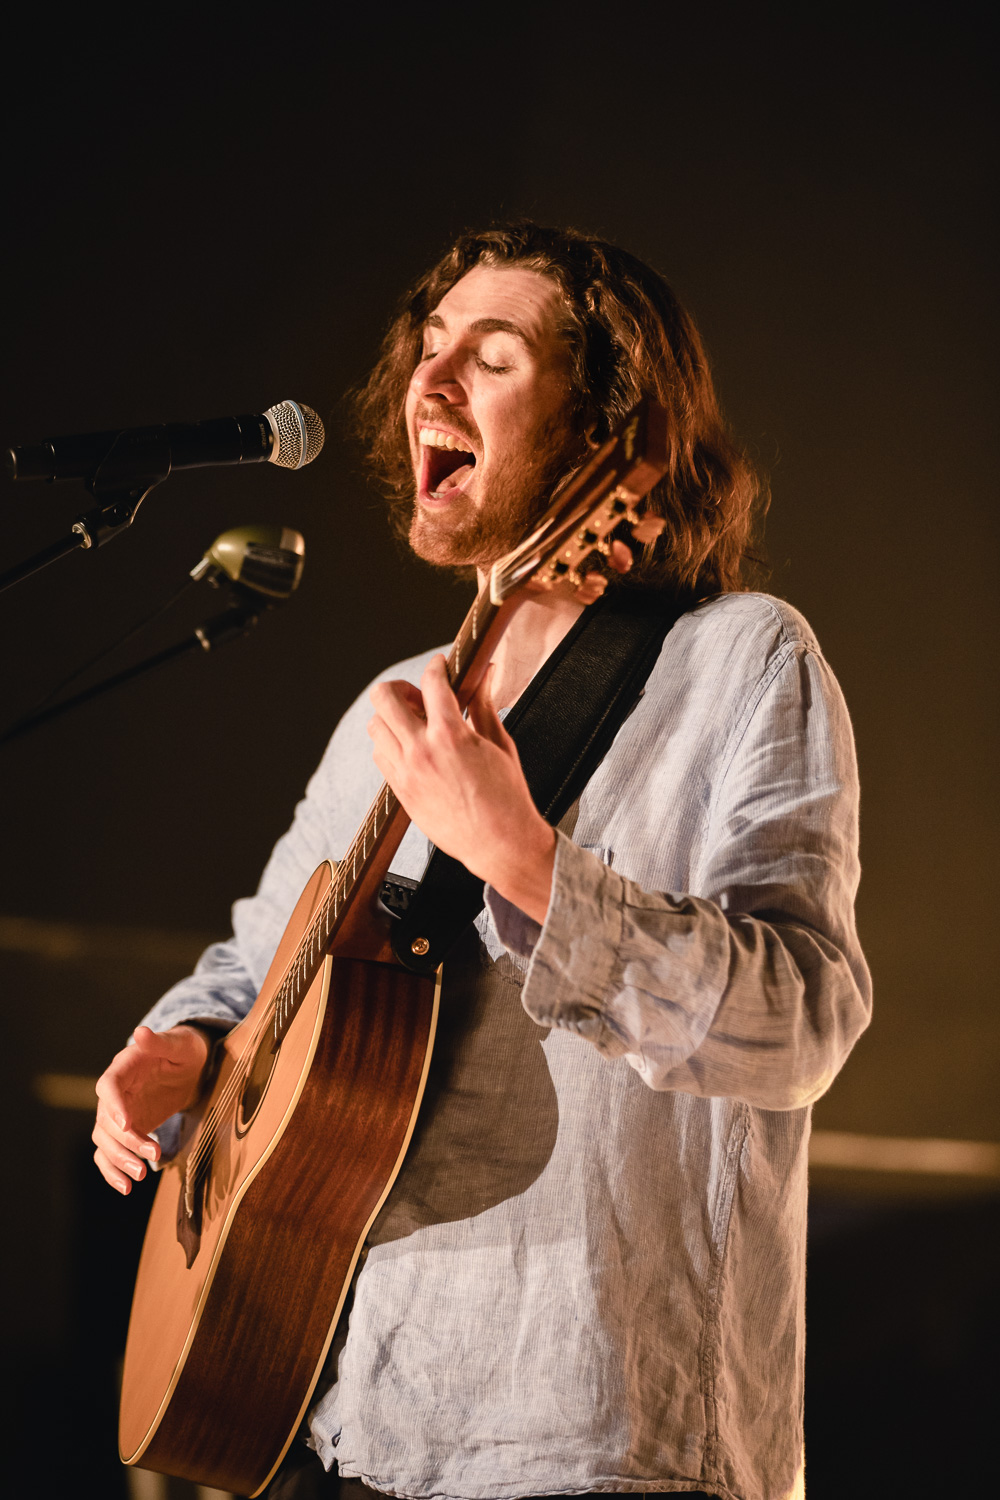 Hozier sings just as passionately live as he does on his albums. Photo: @Lmsorenson